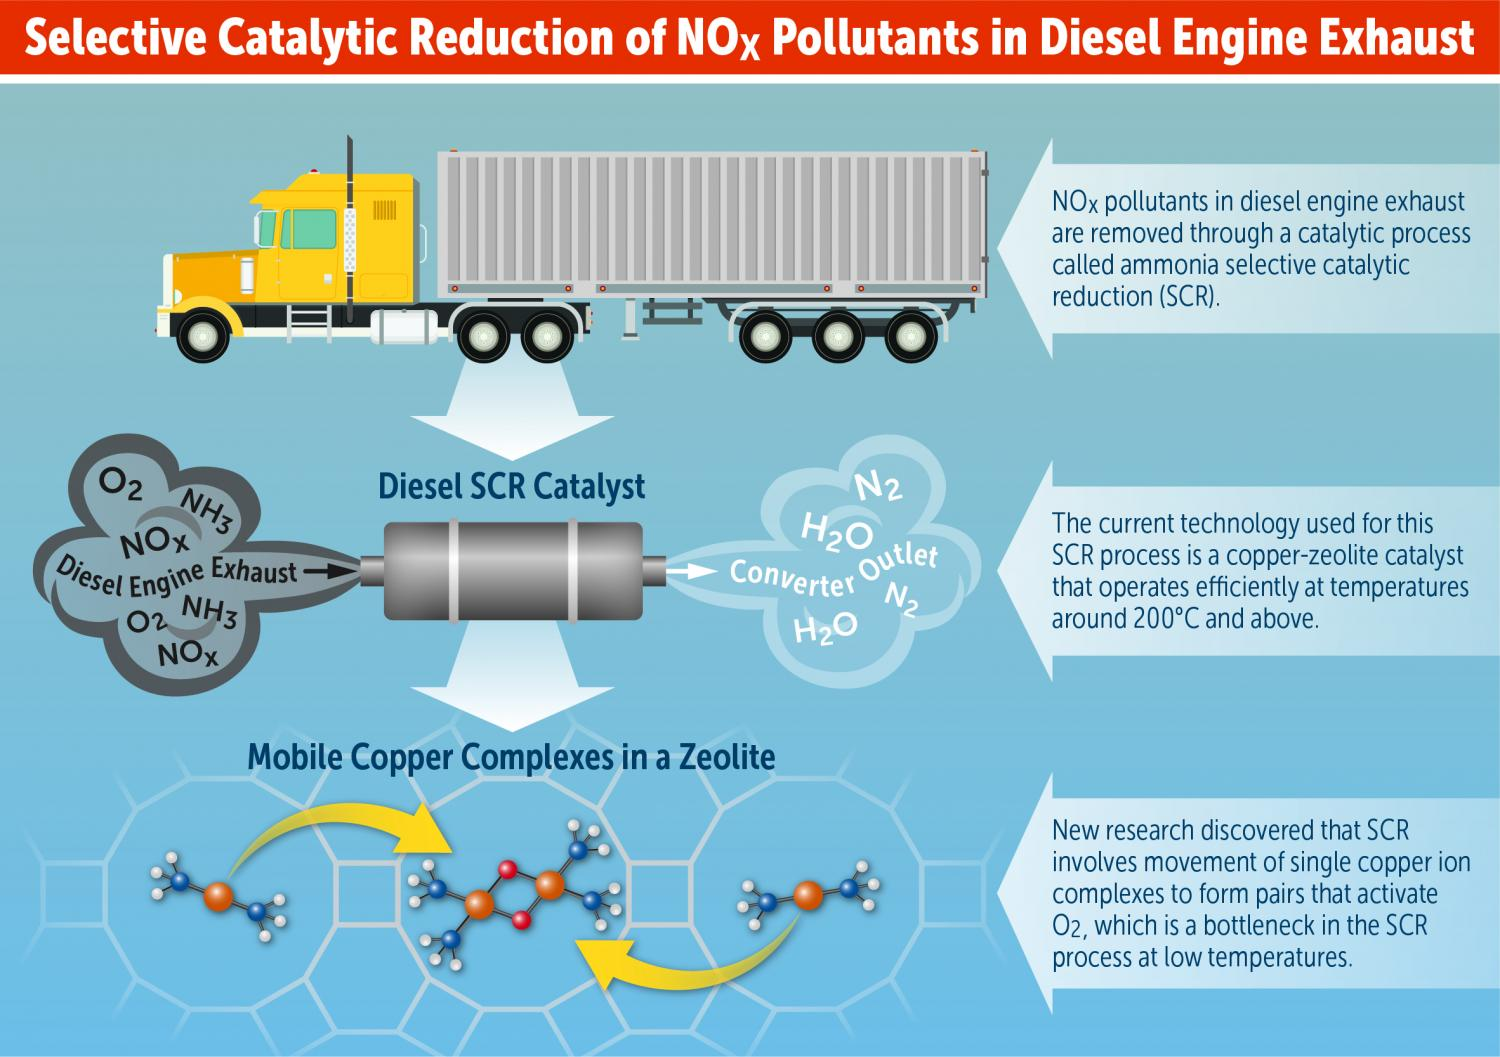 Discovery could lead to new catalyst design to reduce nitrogen